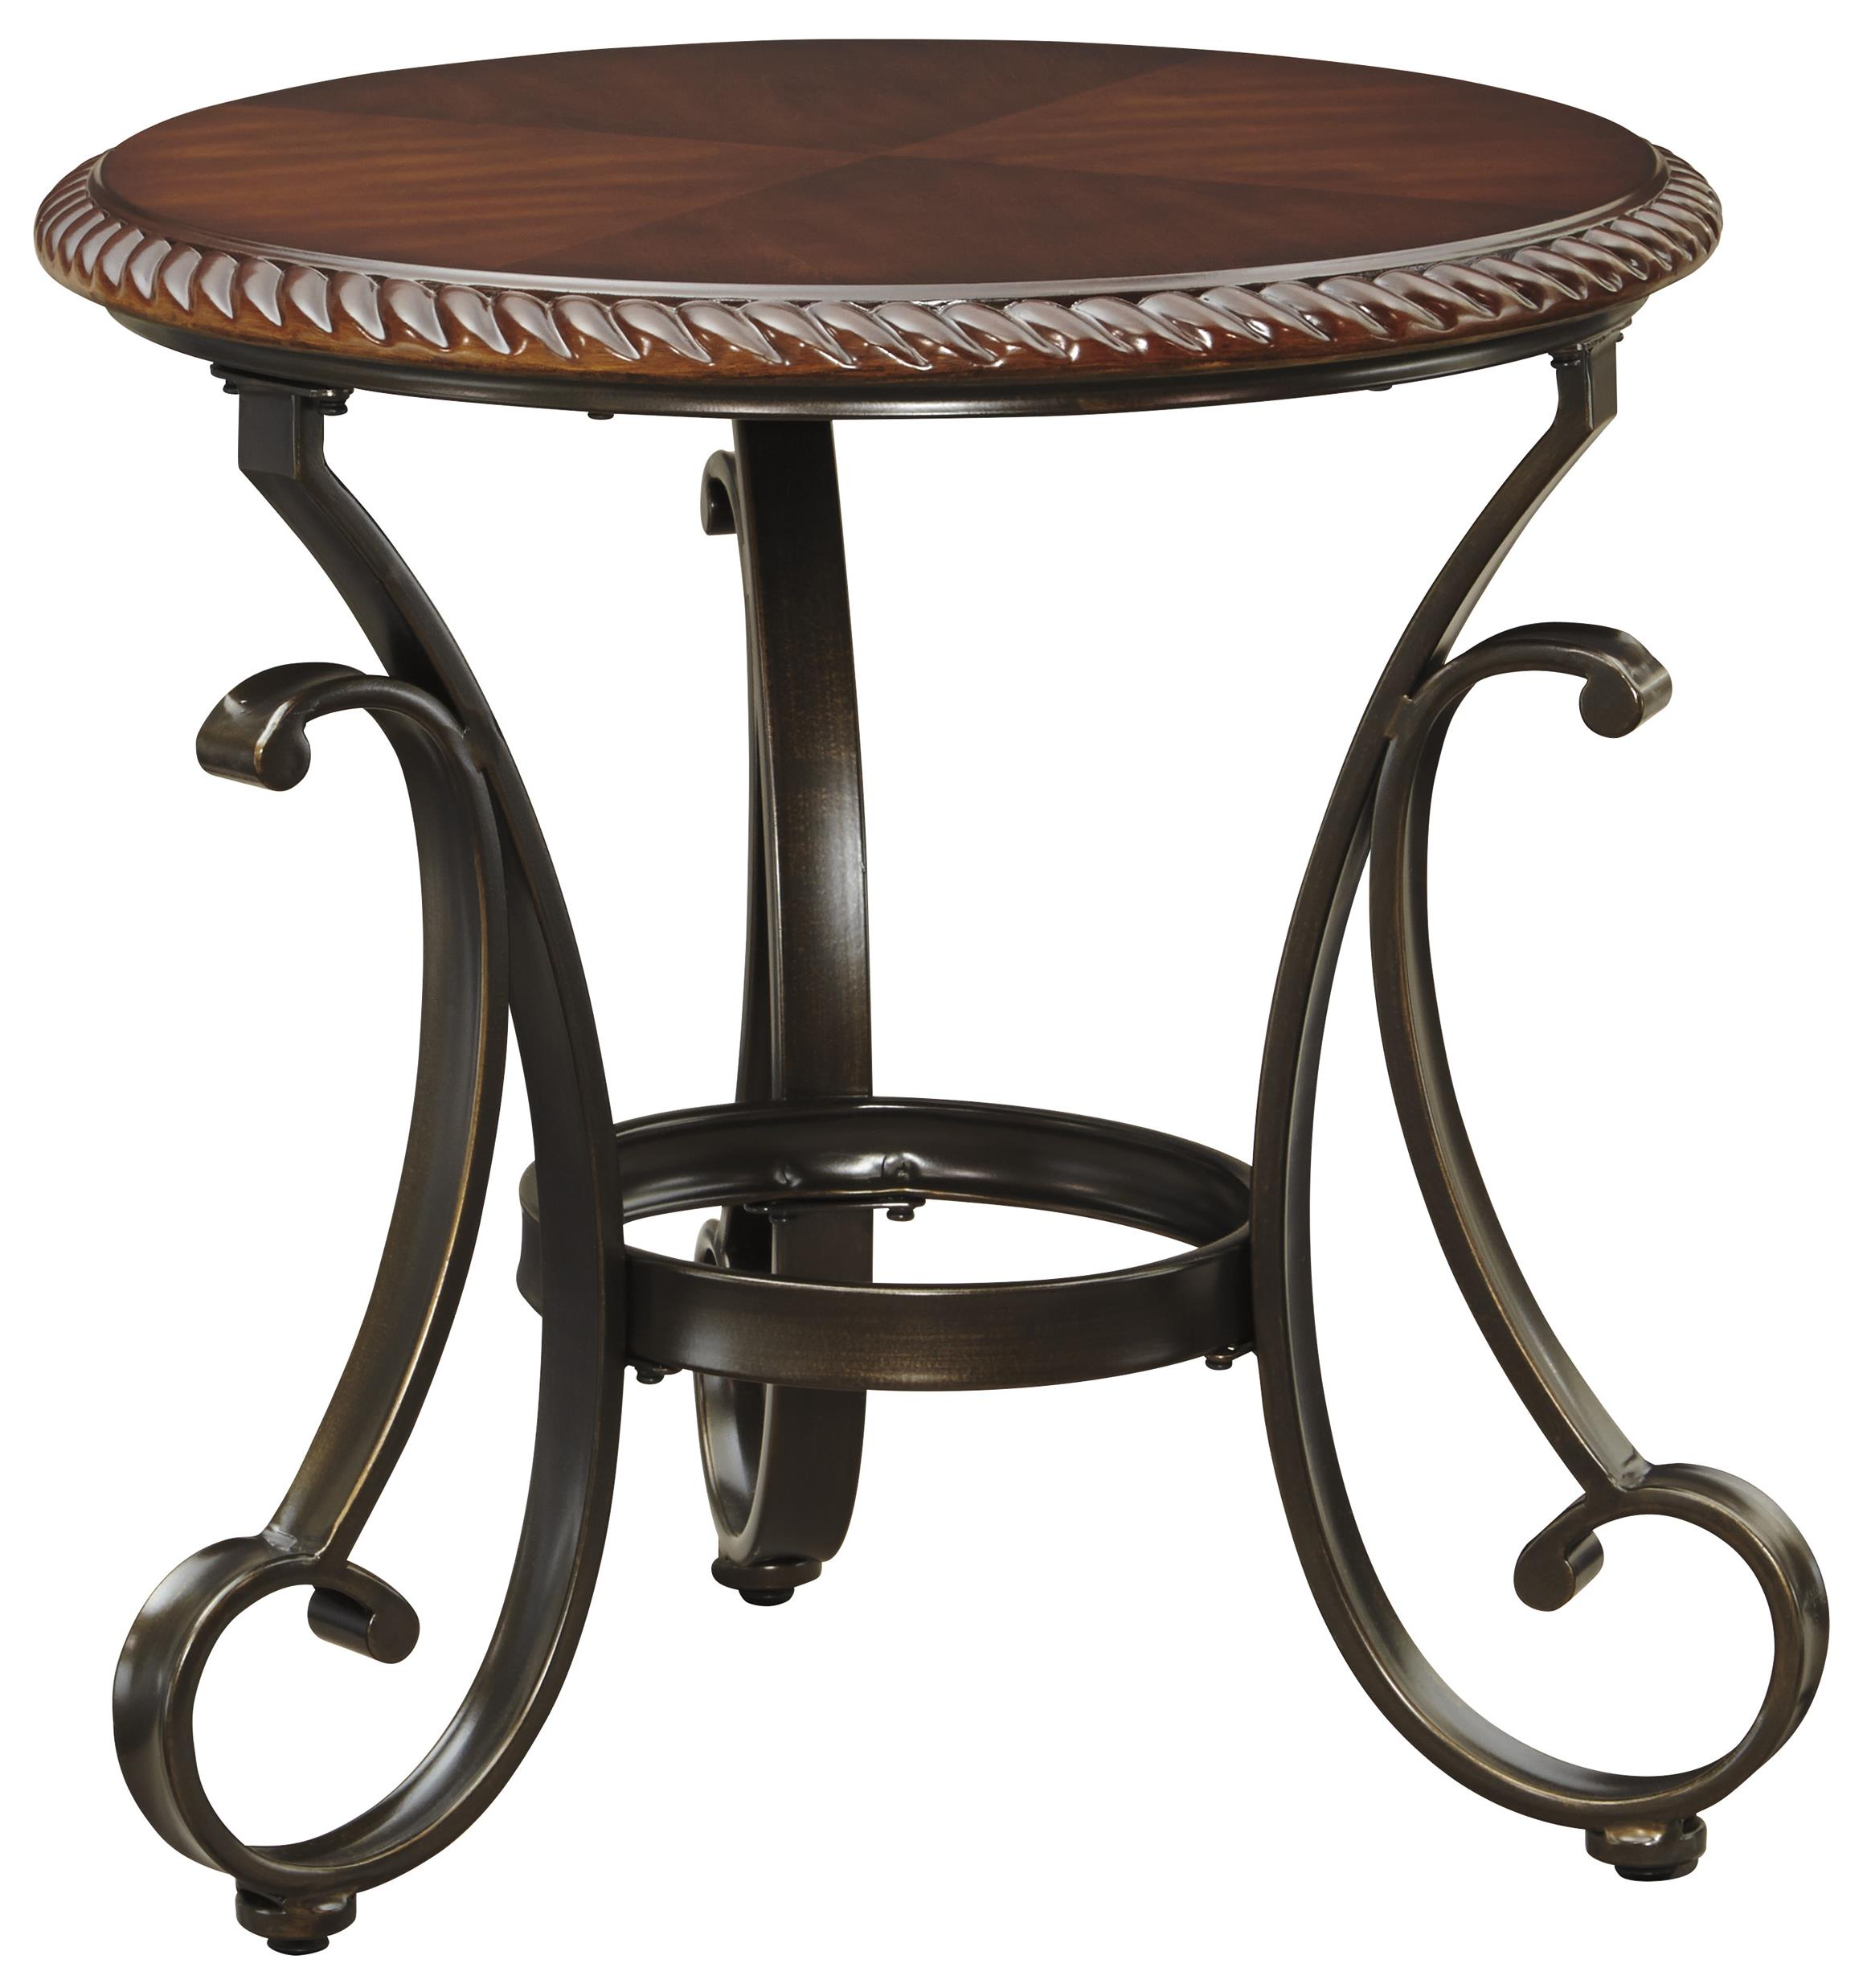 Signature Design by Ashley Gambrey Round End Table - Item Number: T626-6